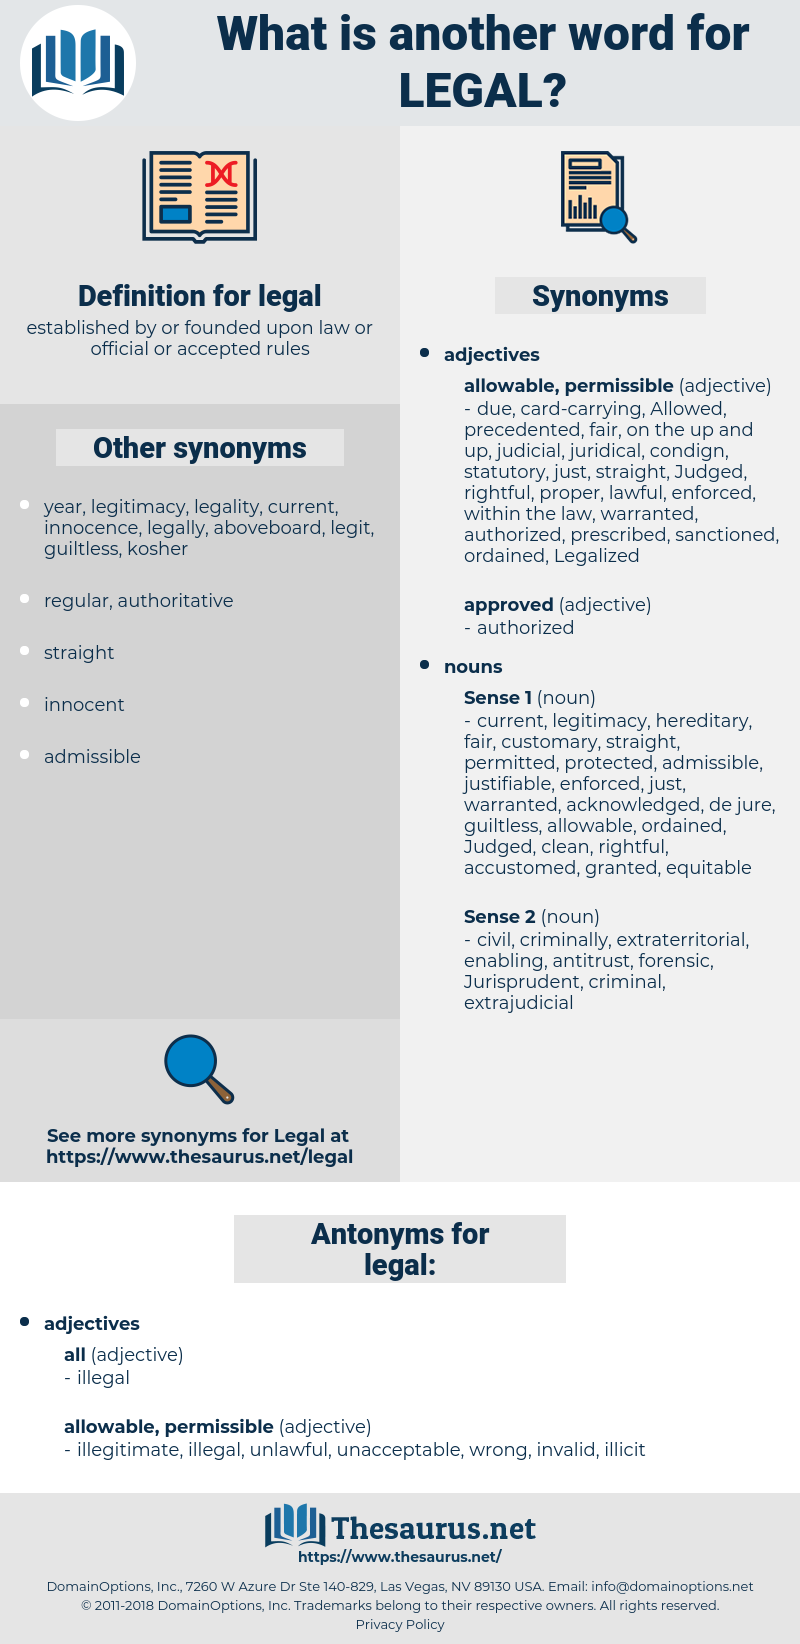 legal, synonym legal, another word for legal, words like legal, thesaurus legal